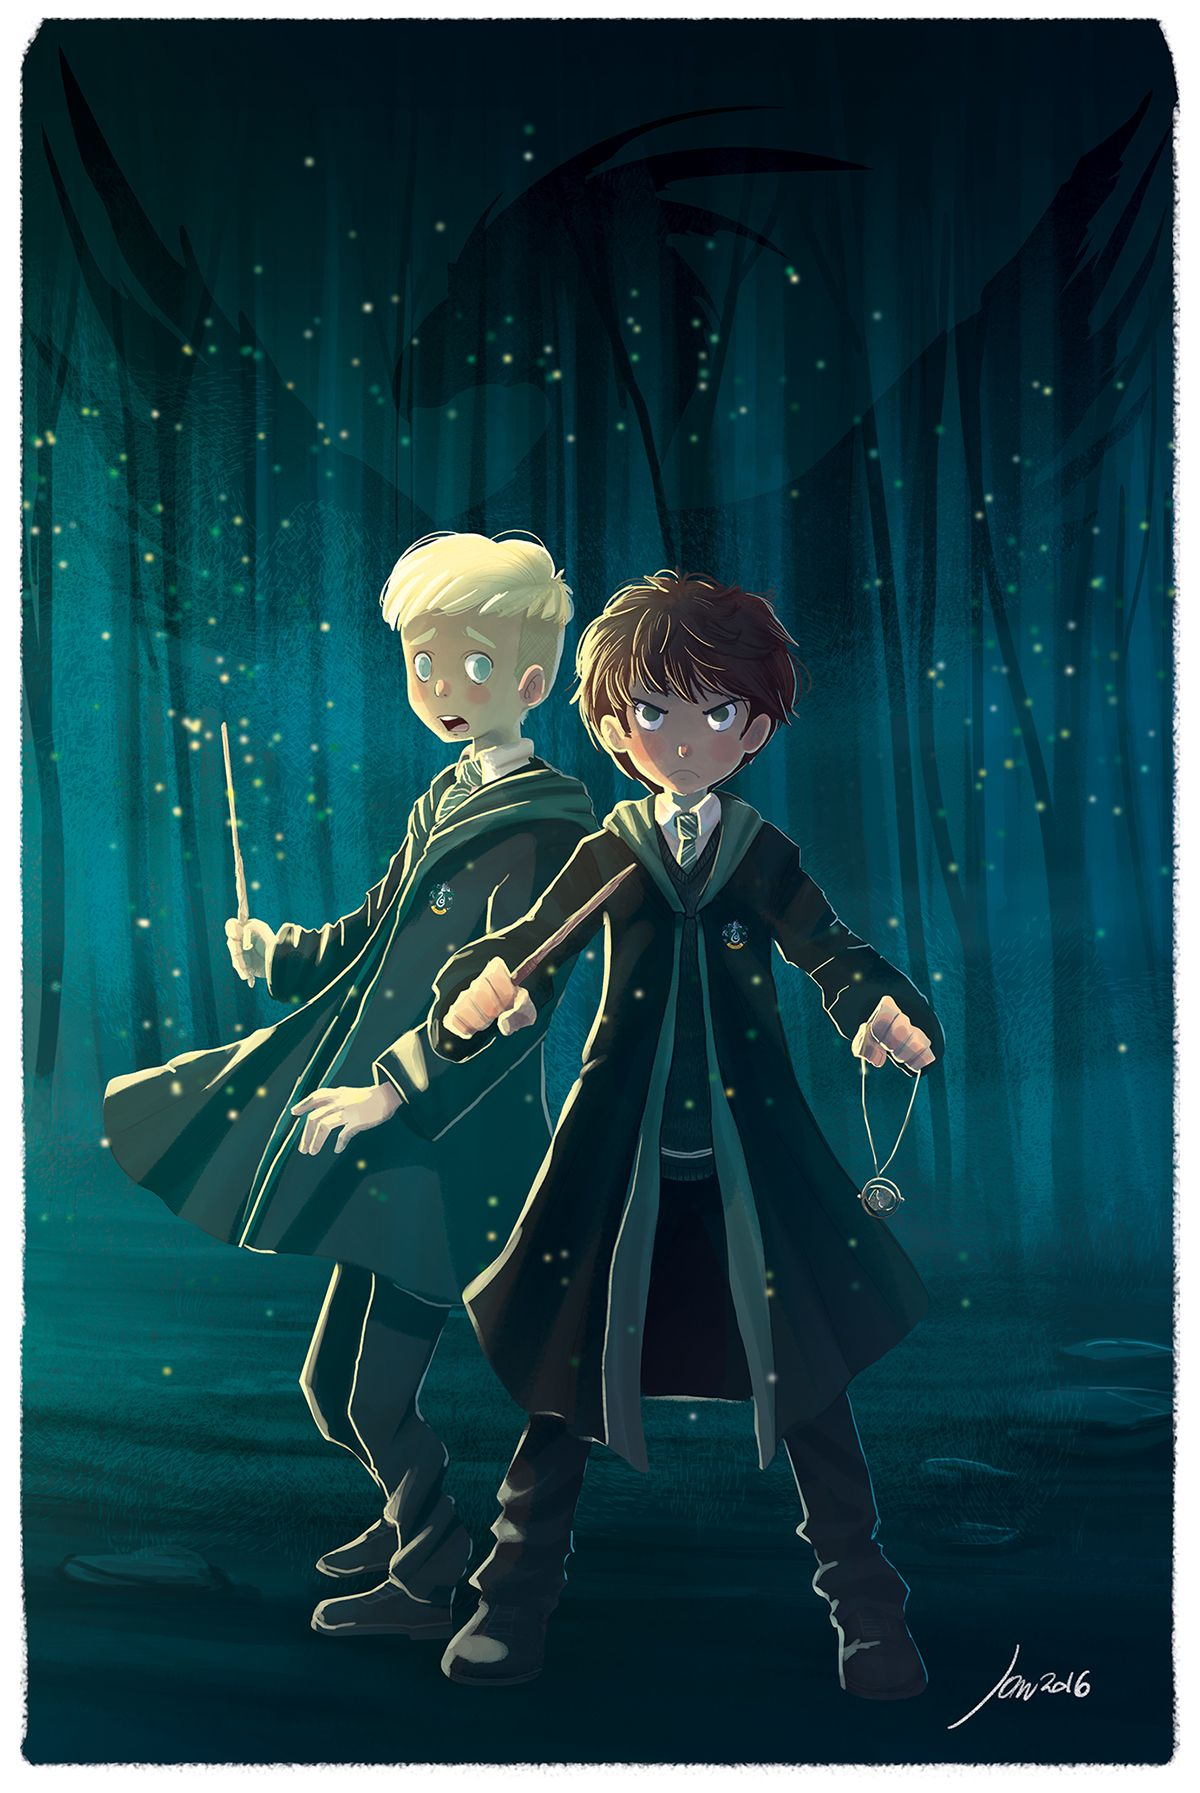 Harry Potter And The Cursed Child Fanart On Behance Harry Potter Cursed Child Harry Potter Artwork Harry Potter Drawings